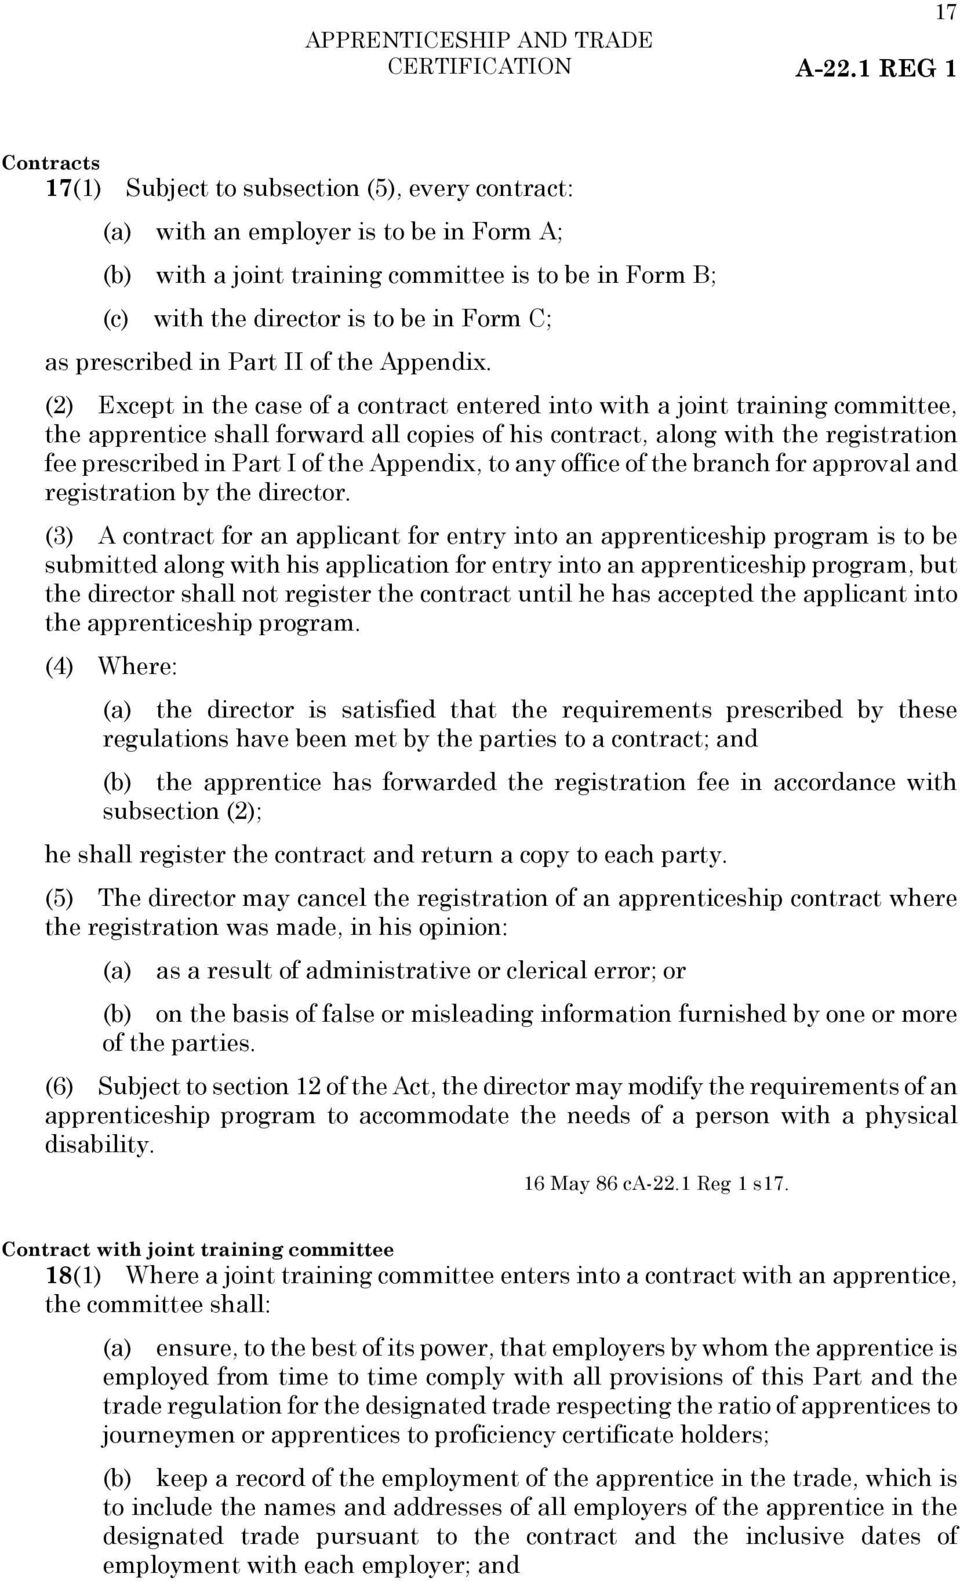 (2) Except in the case of a contract entered into with a joint training committee, the apprentice shall forward all copies of his contract, along with the registration fee prescribed in Part I of the